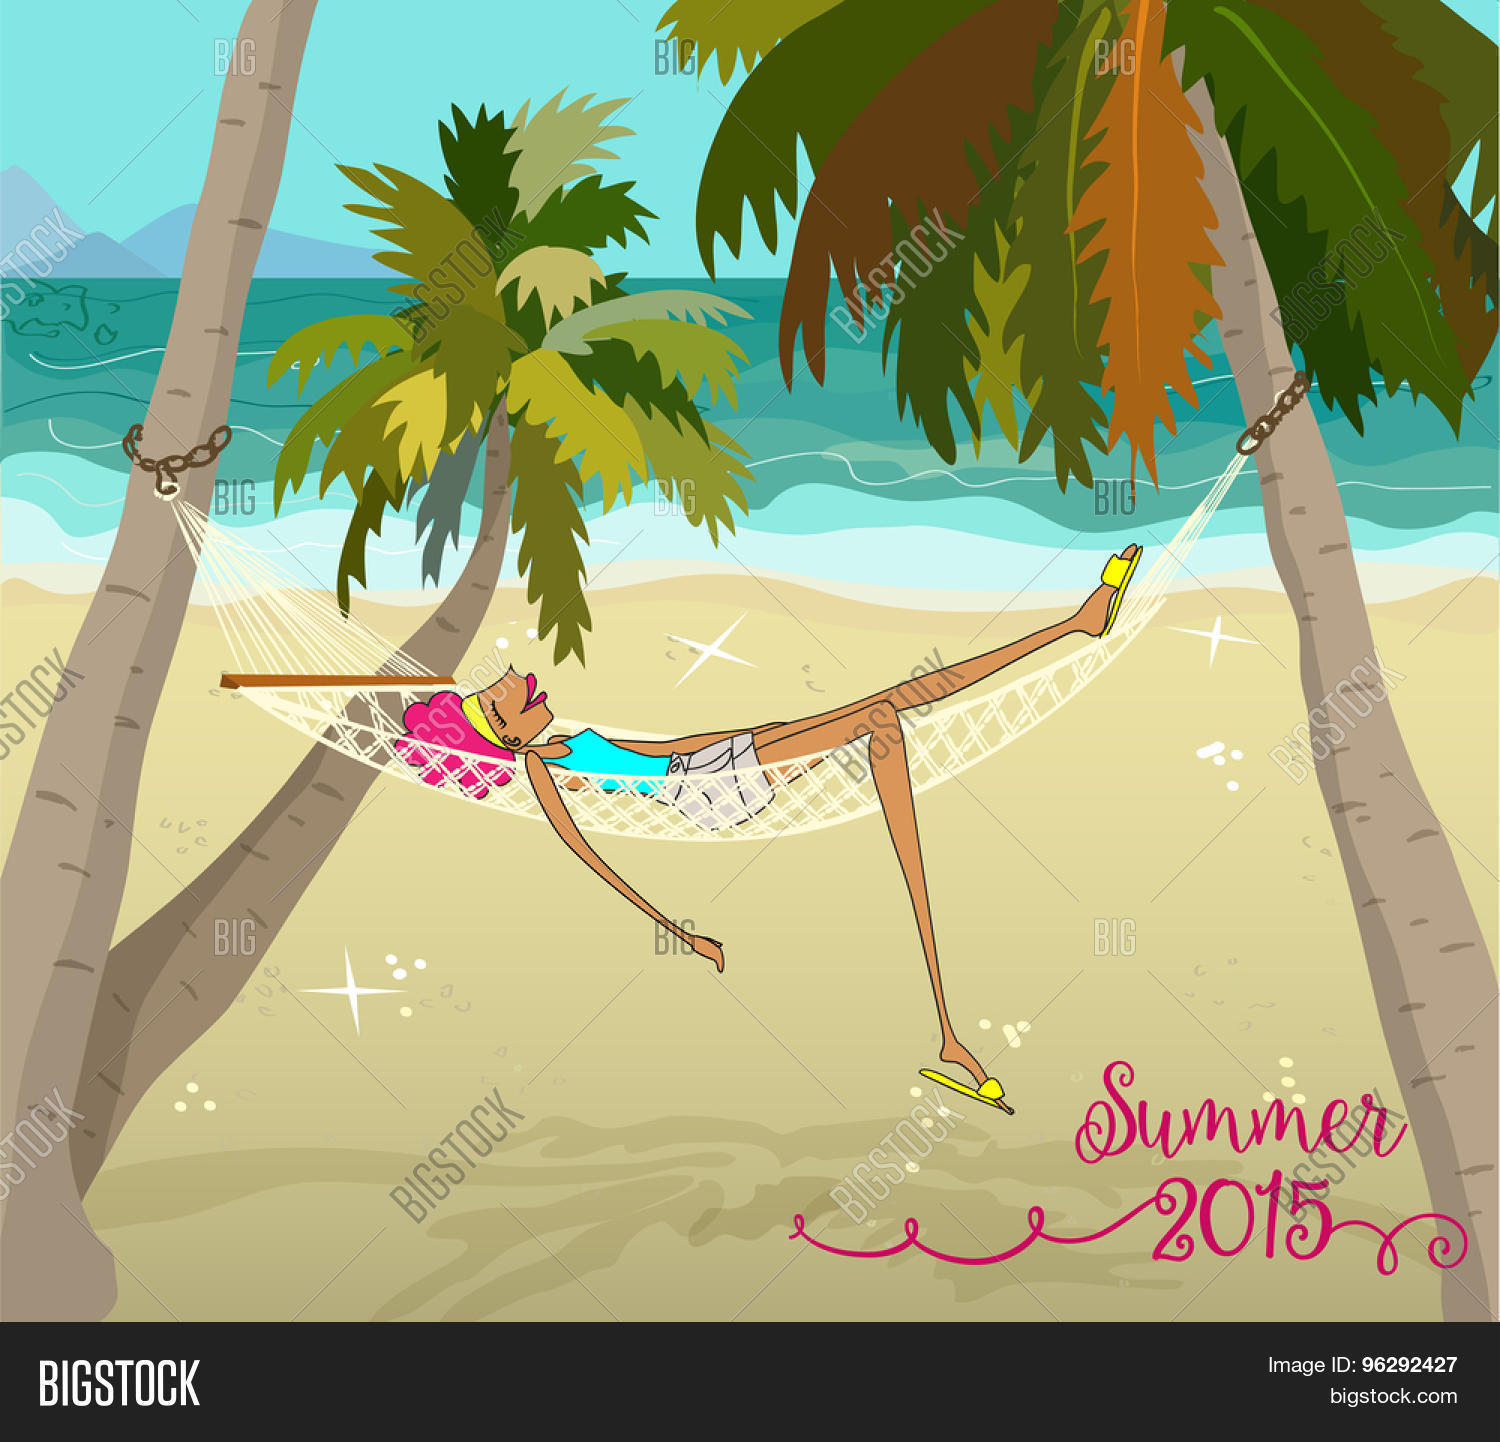 Summer holiday vector photo free trial bigstock summer holiday cartoon redhead relaxing in hammock on a sandy beach with palm trees voltagebd Choice Image